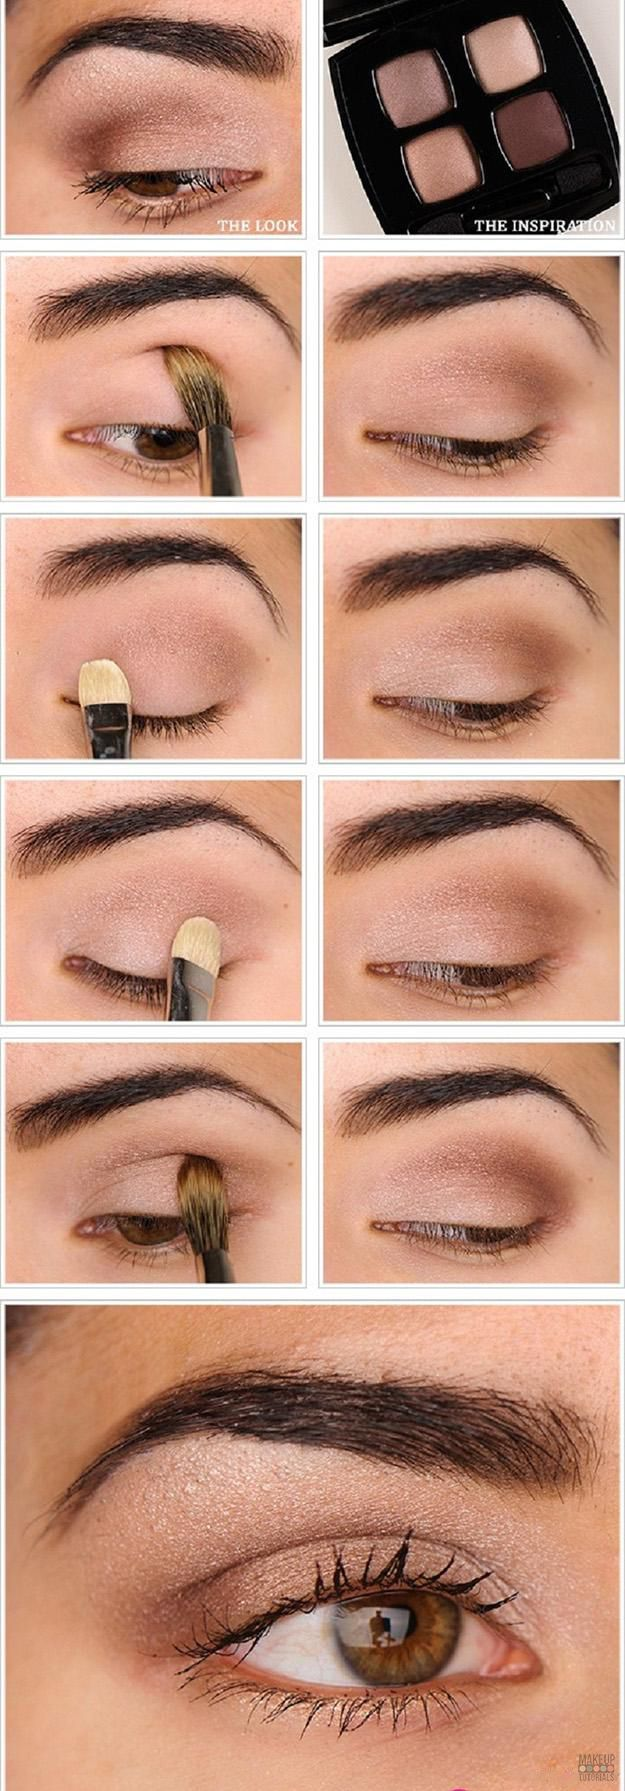 Here's the best everyday makeup look for you, natural makeup look for your lip color, eyeshadow & skin tone.